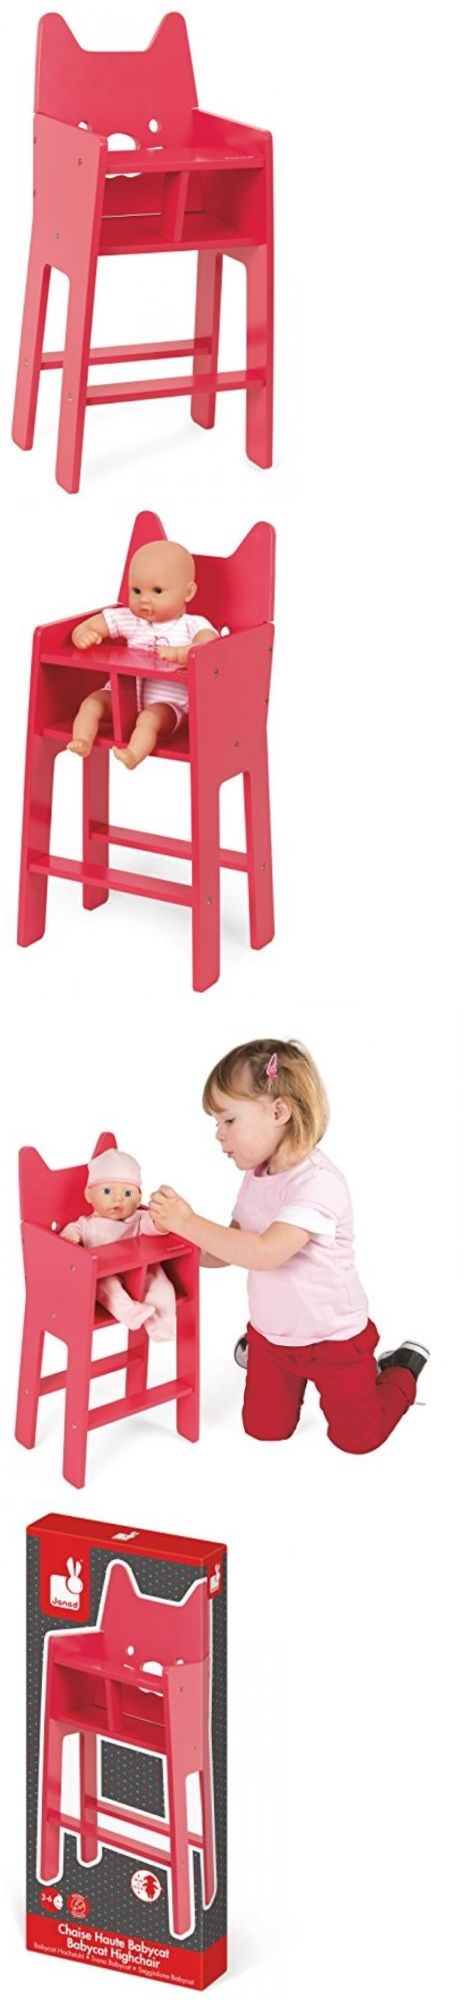 Dollhouse Size 19179: Janod Babycat Pink High Chair -> BUY IT NOW ONLY: $45.69 on eBay!